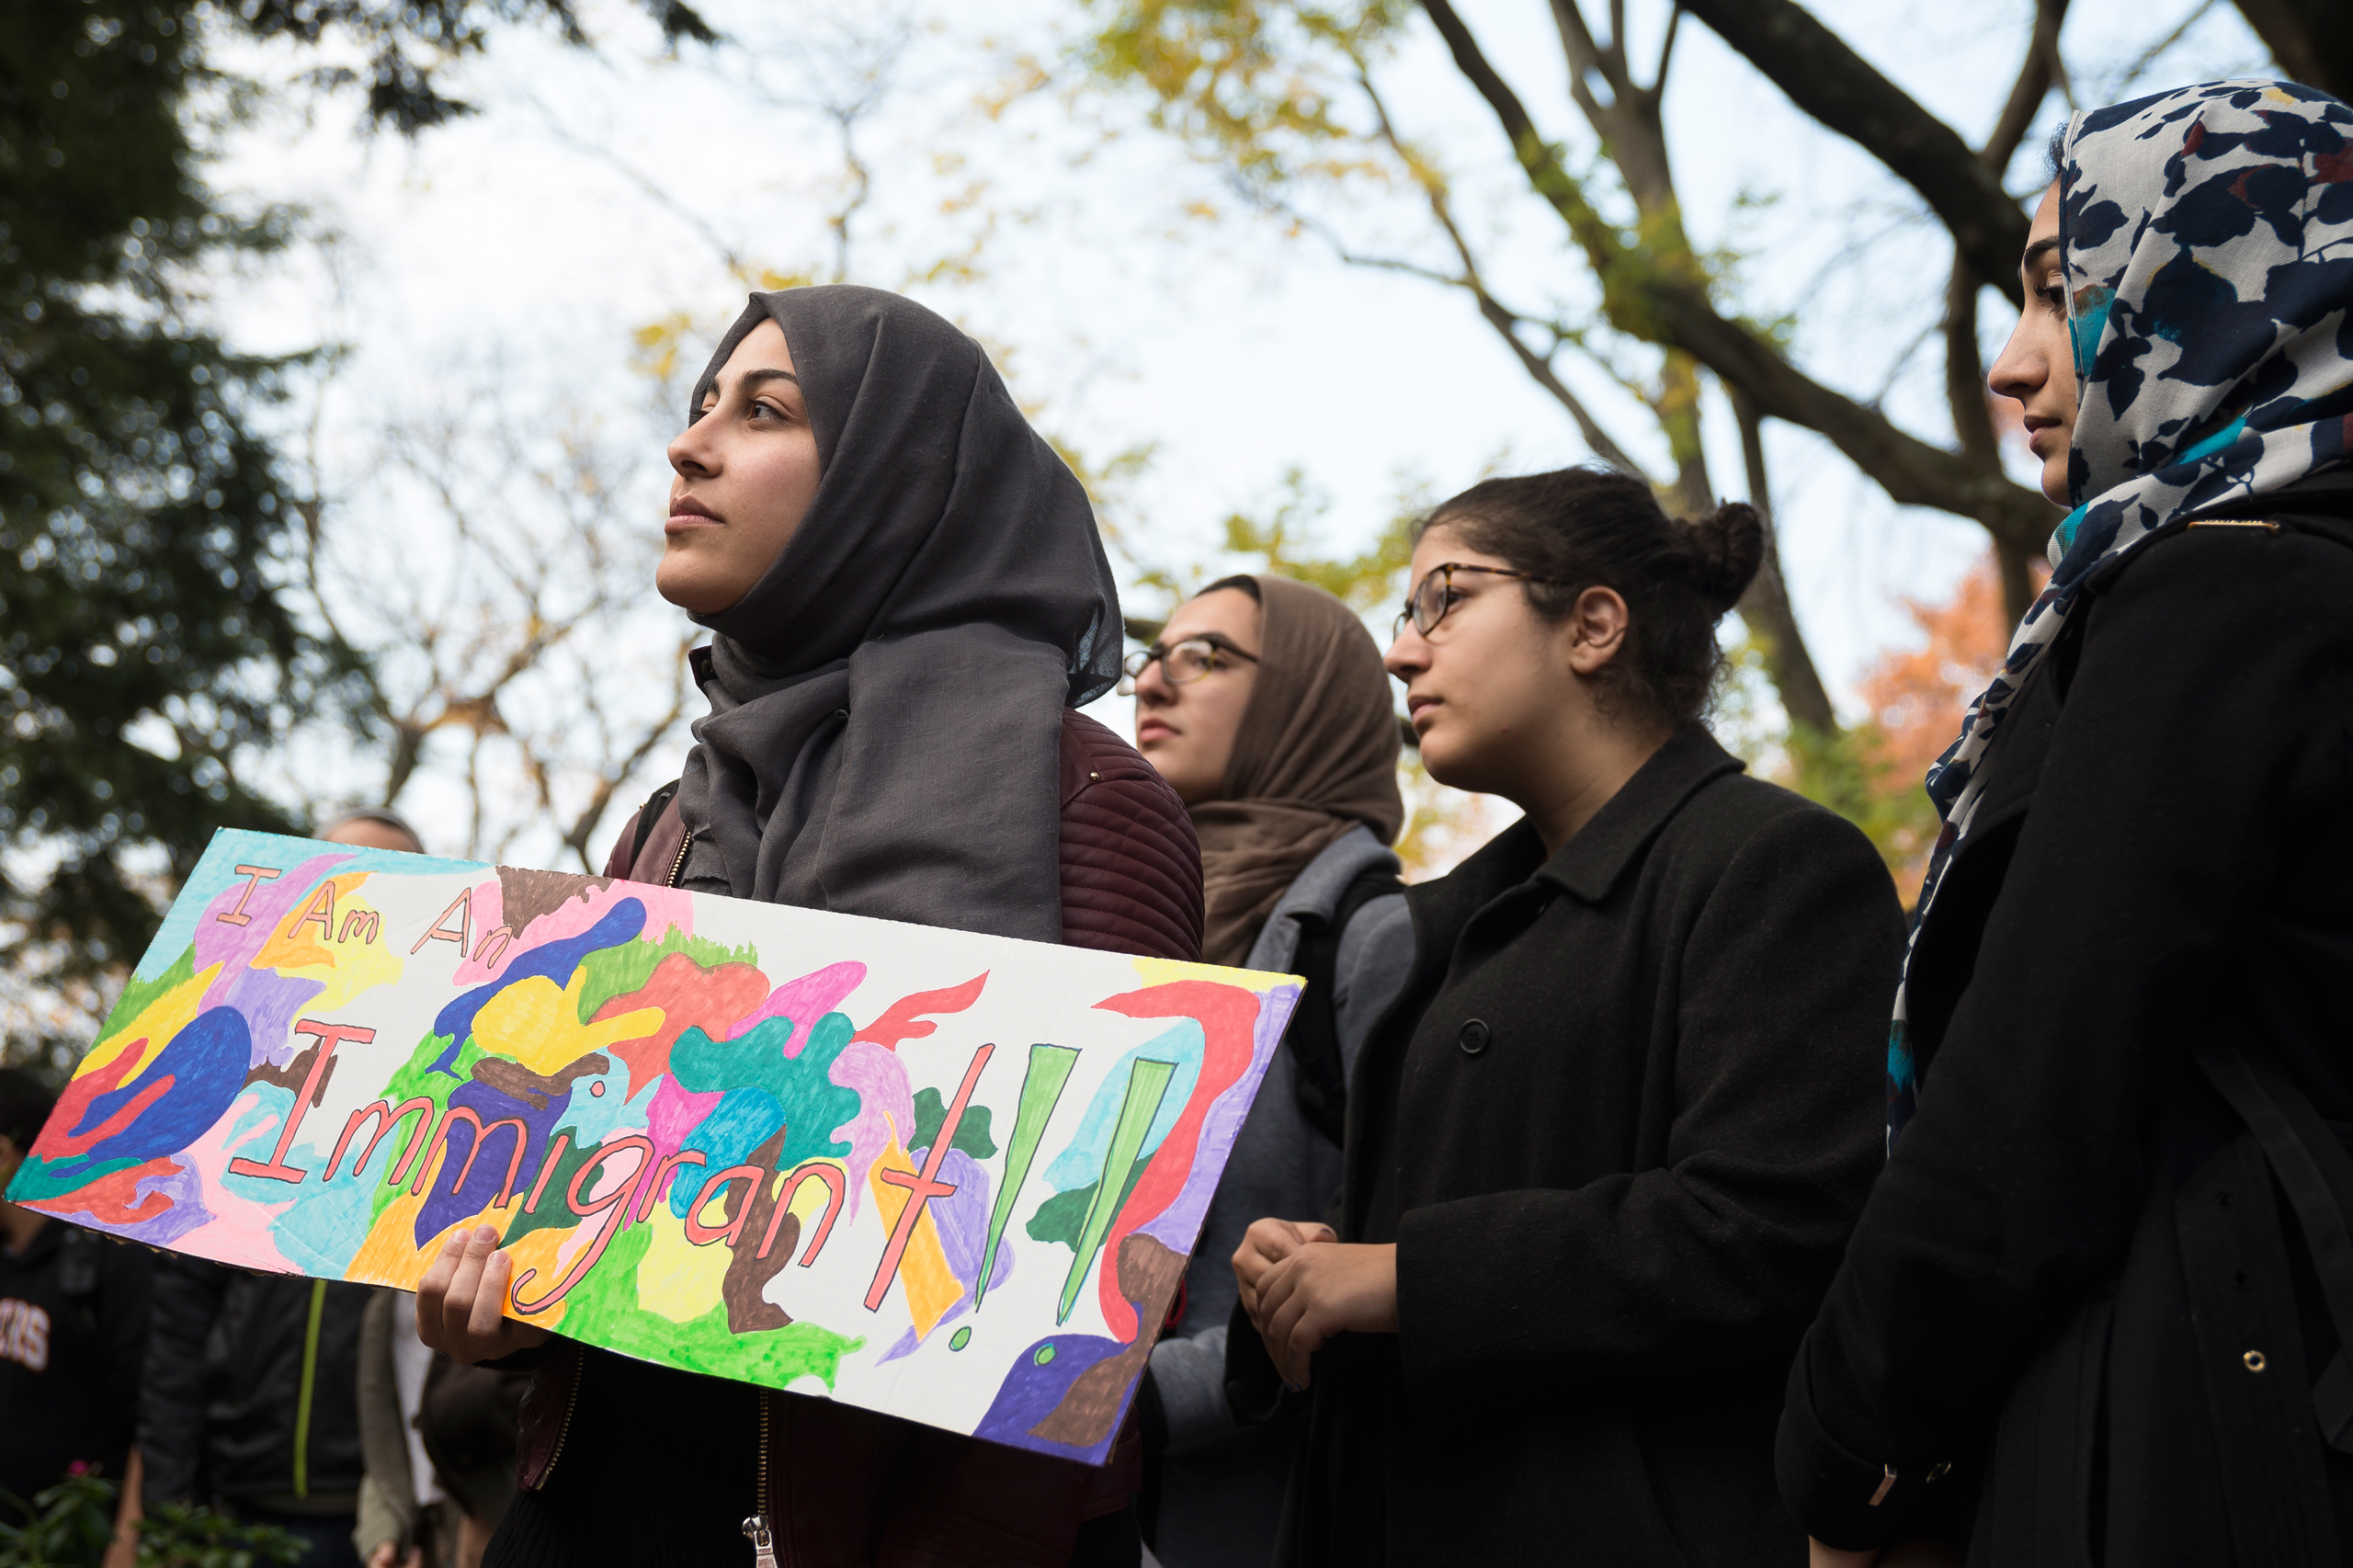 As part of a nationwide series of university student walkouts in protest of Republican President-elect Donald J. Trump's proposed policy initiatives regarding immigration and the deportation of criminal undocumented immigrants, nearly a thousand students and faculty members at Rutgers University staged a rally and march in downtown New Brunswick, N.J., on Nov.16, 2016.